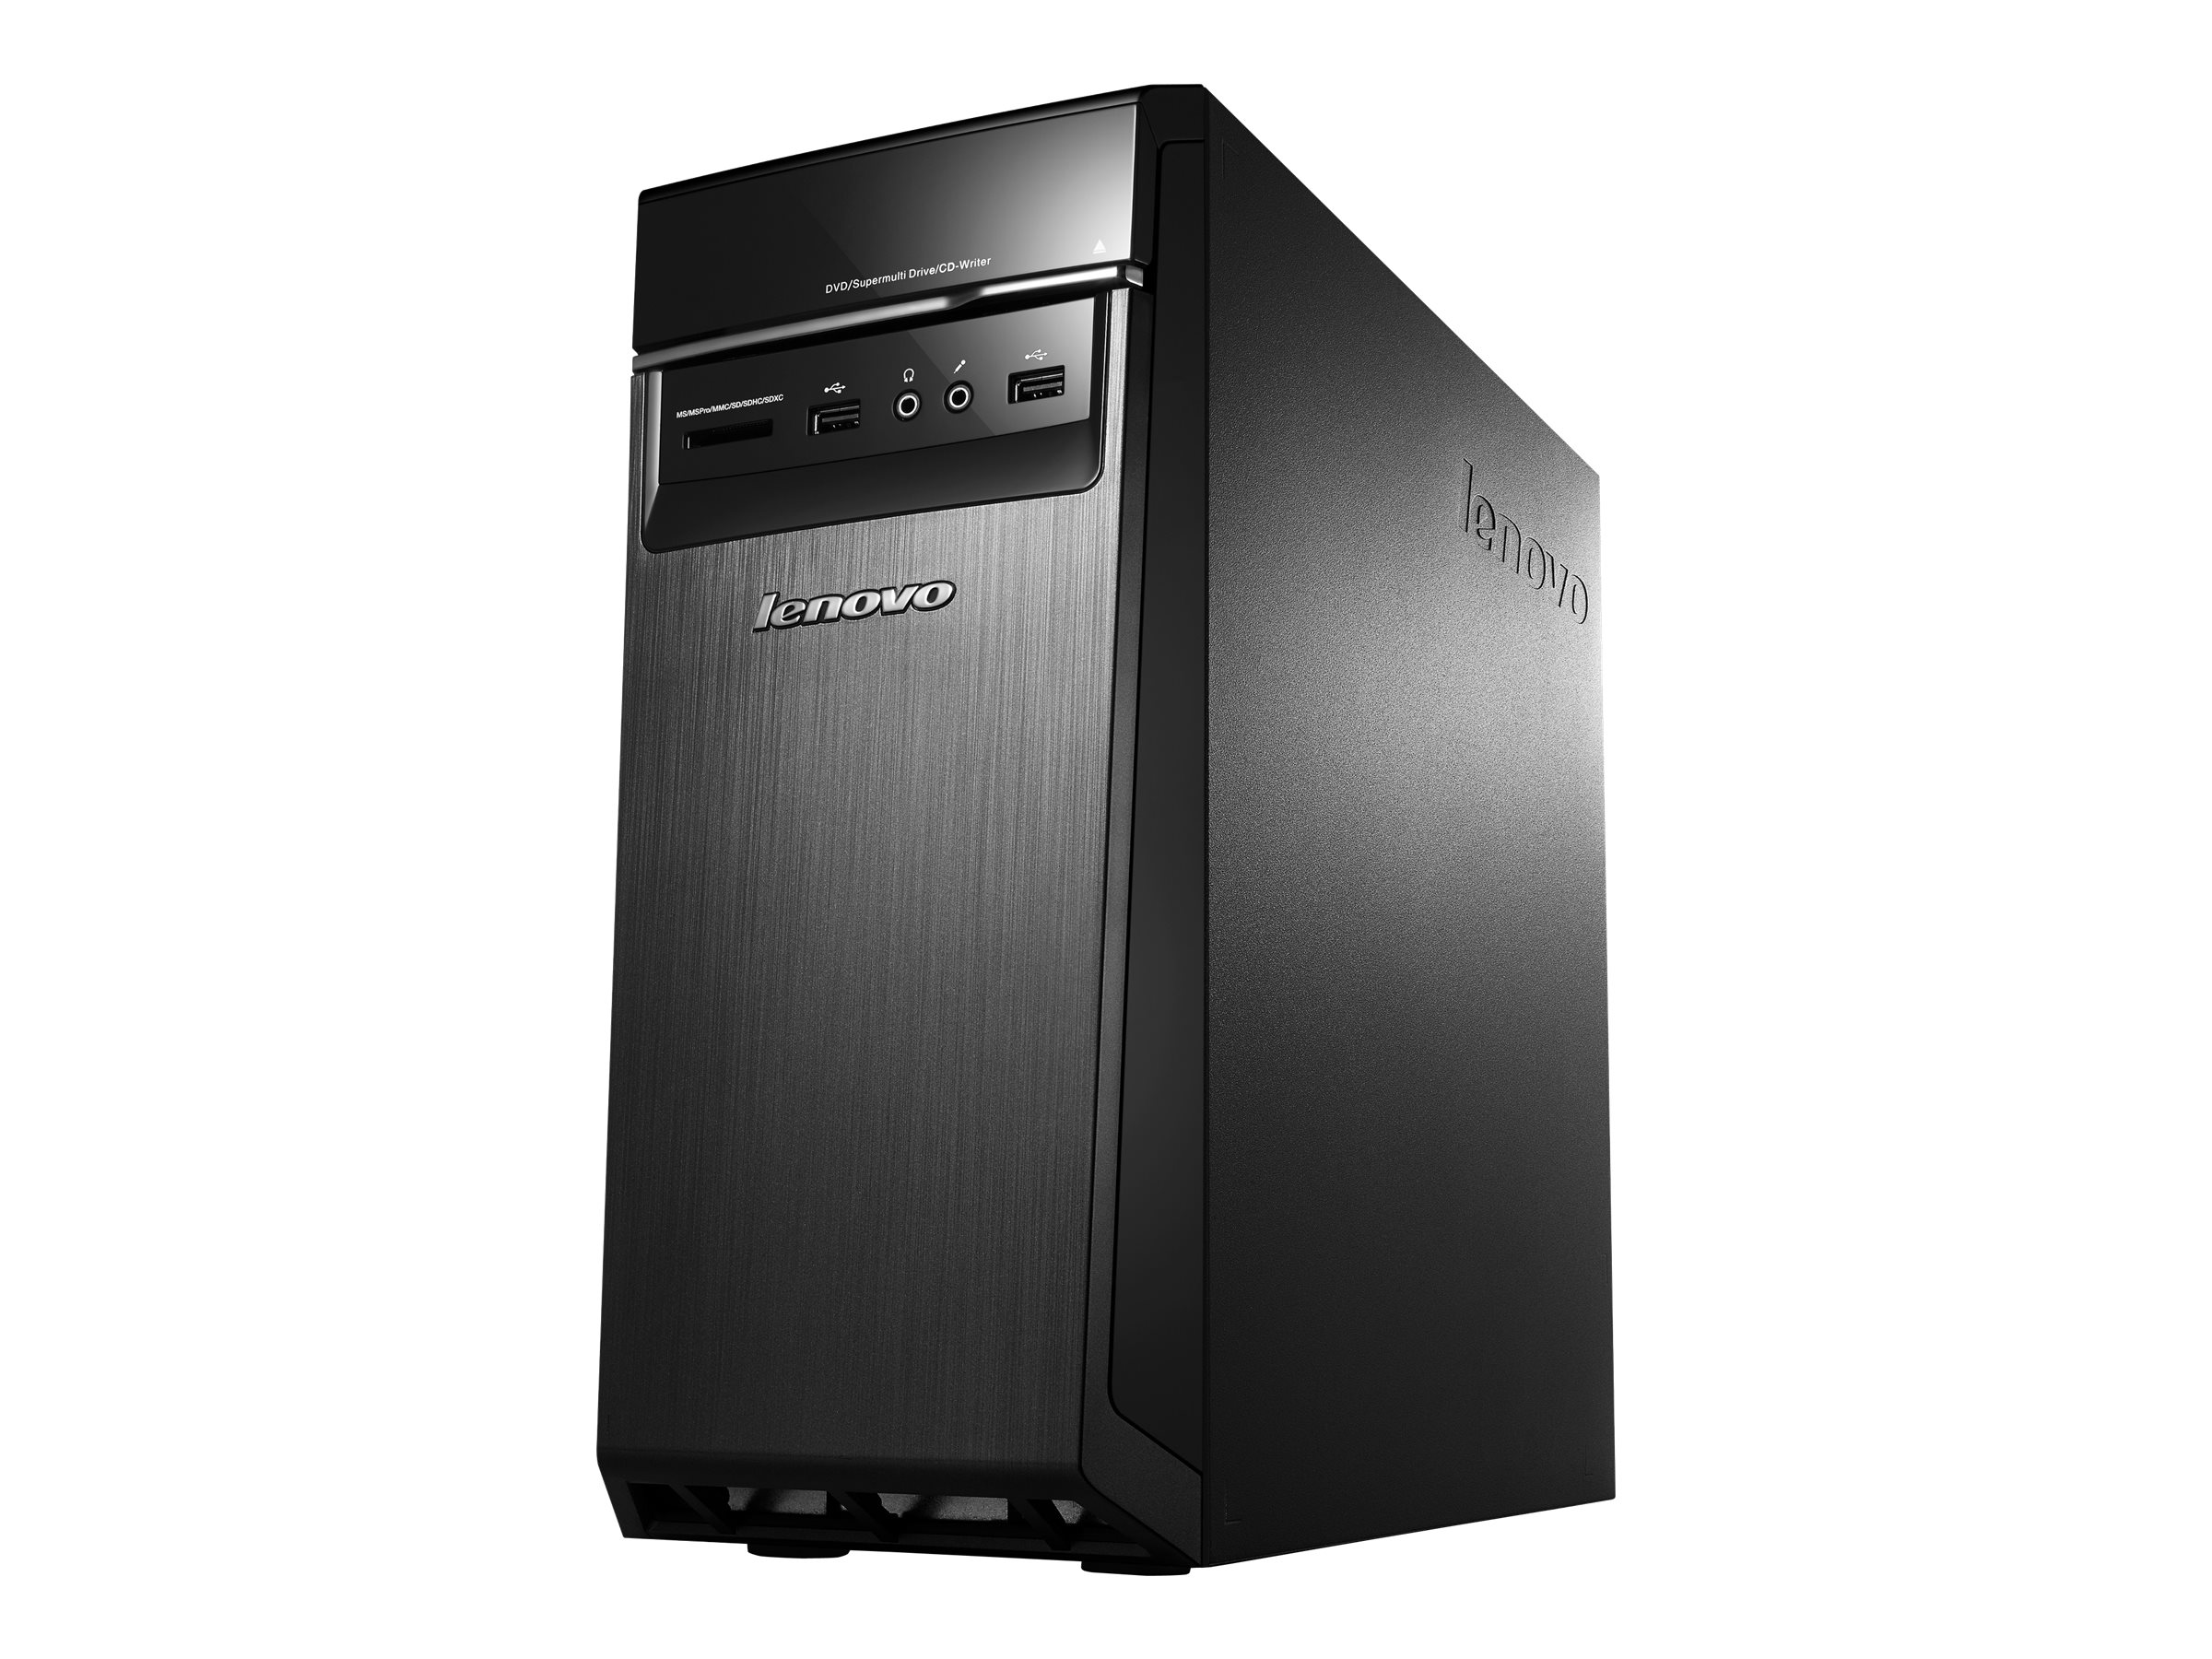 Lenovo H50 Desktop PC G3260 4GB 500GB, 90B700EHUS, 30595201, Desktops